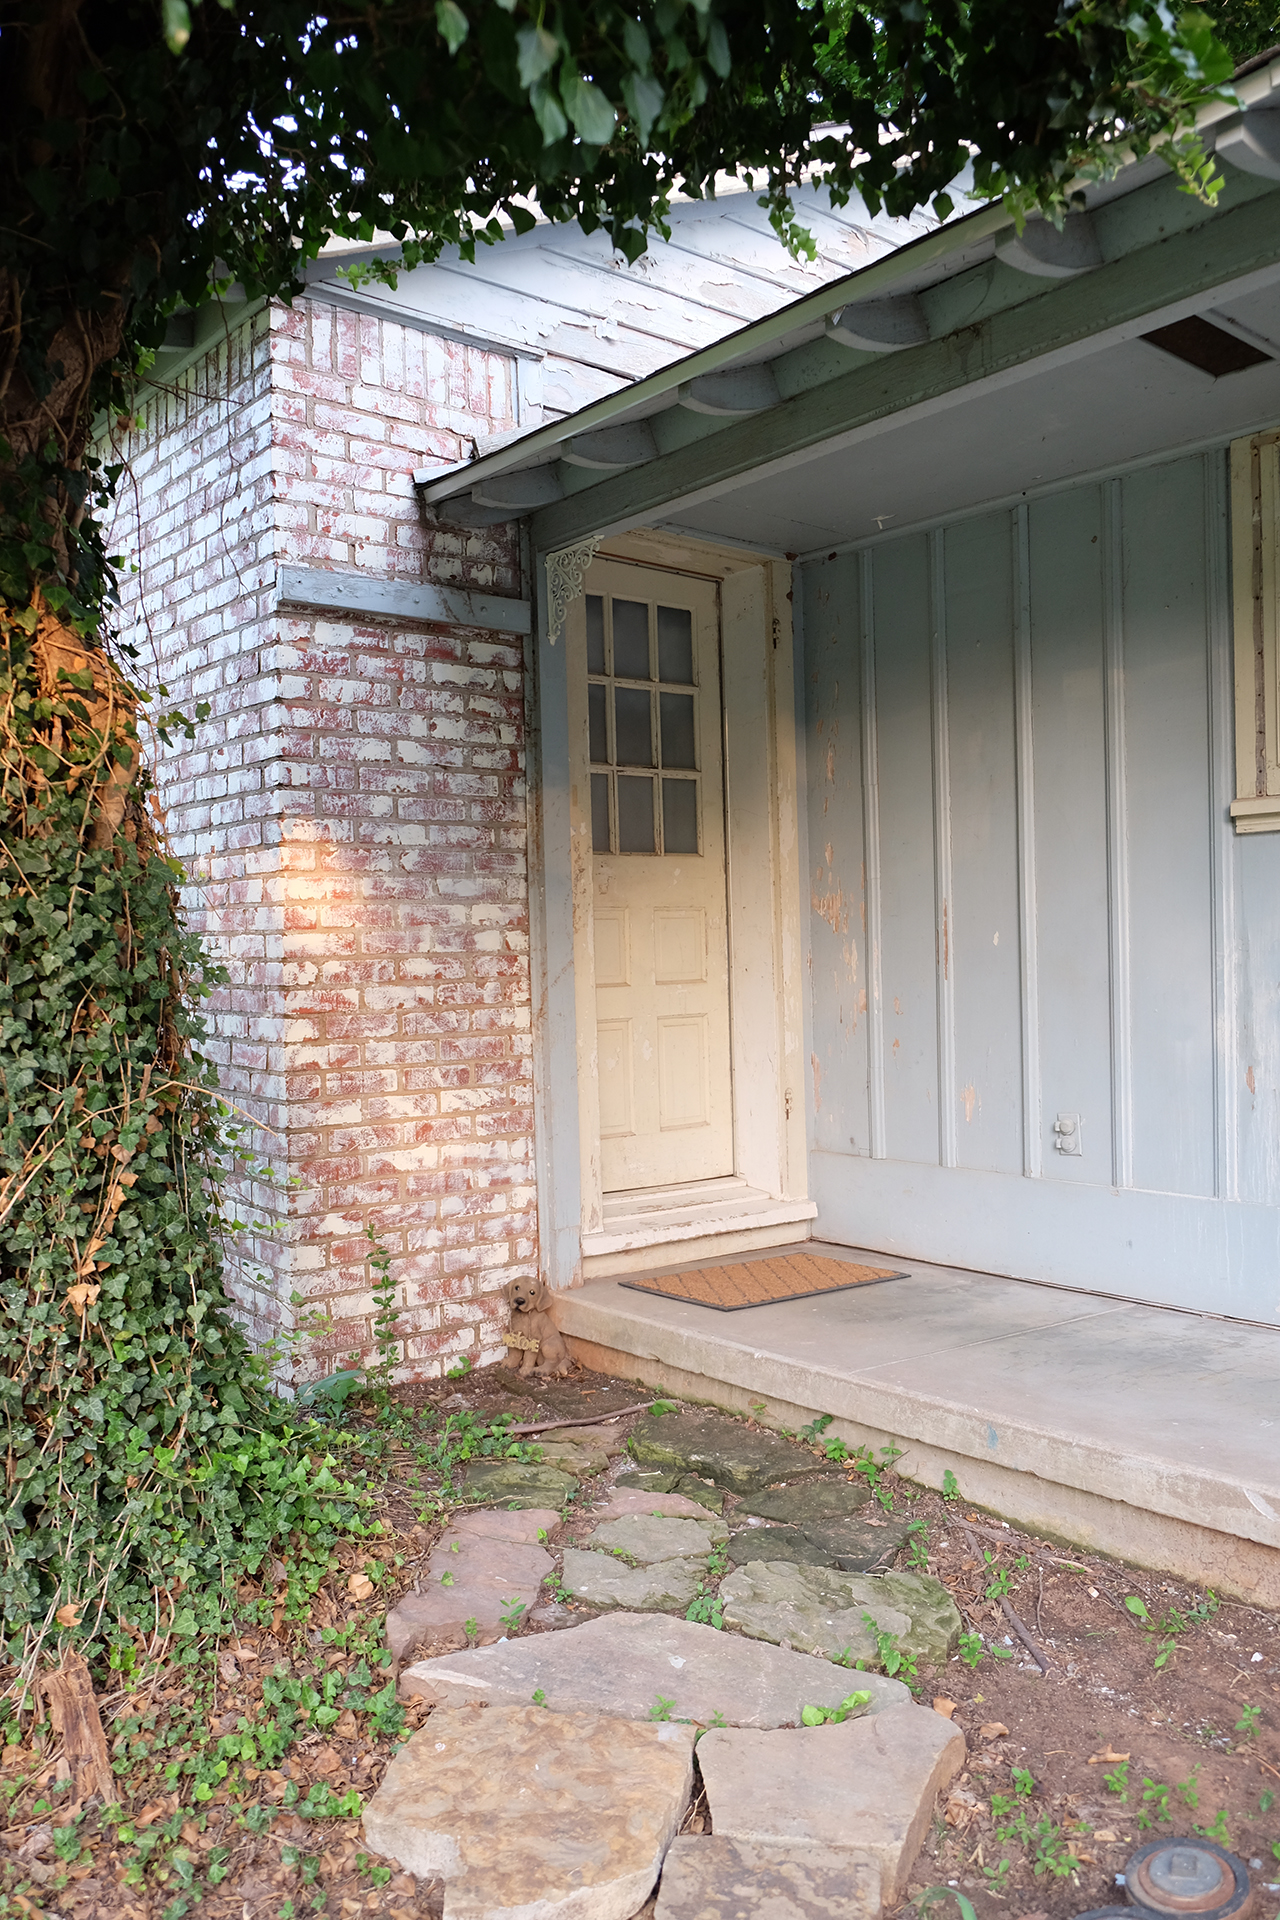 East Kitchen door on northside of house with covered porch - 102 South Kings Rent House